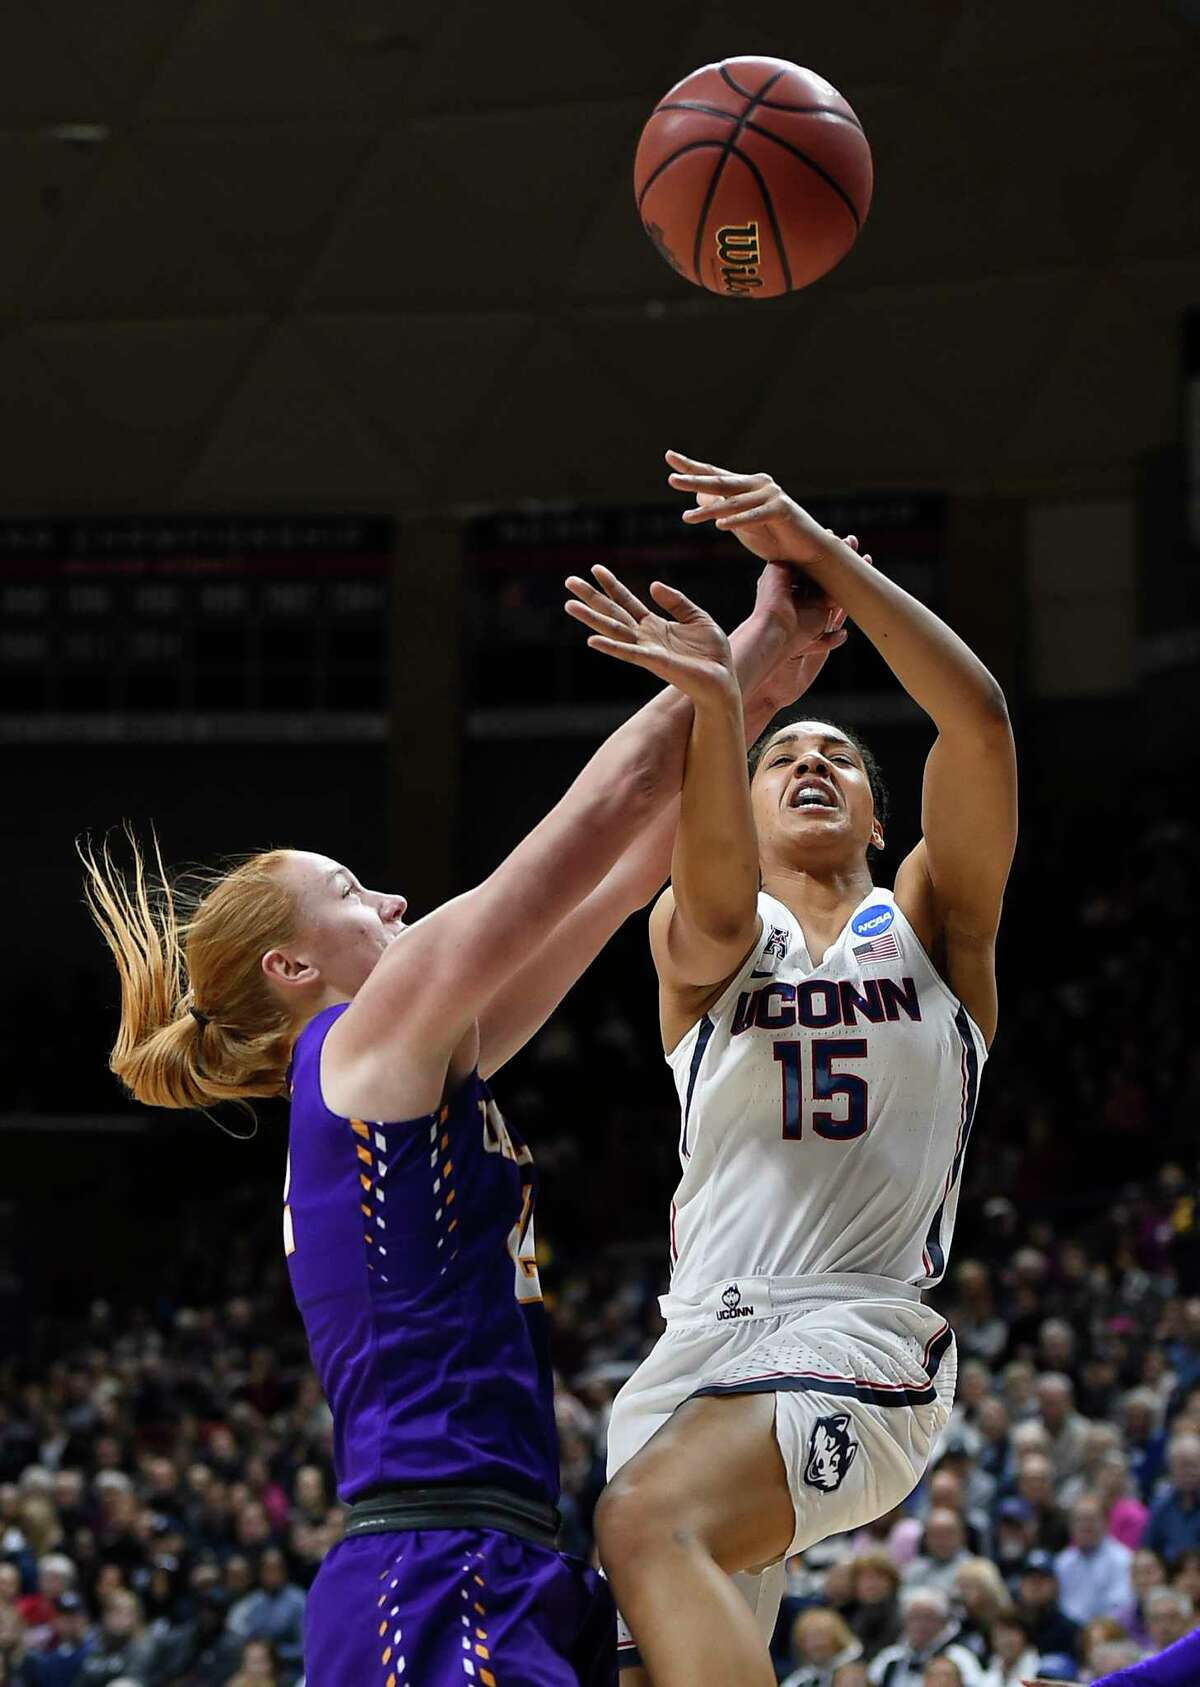 Albany's Heather Forster, left, fouls Connecticut's Gabby Williams, right, during the first half of a first round round of a women's college basketball game in the NCAA Tournament, Saturday, March 18, 2017, in Storrs, Conn. (AP Photo/Jessica Hill) ORG XMIT: CTJH101